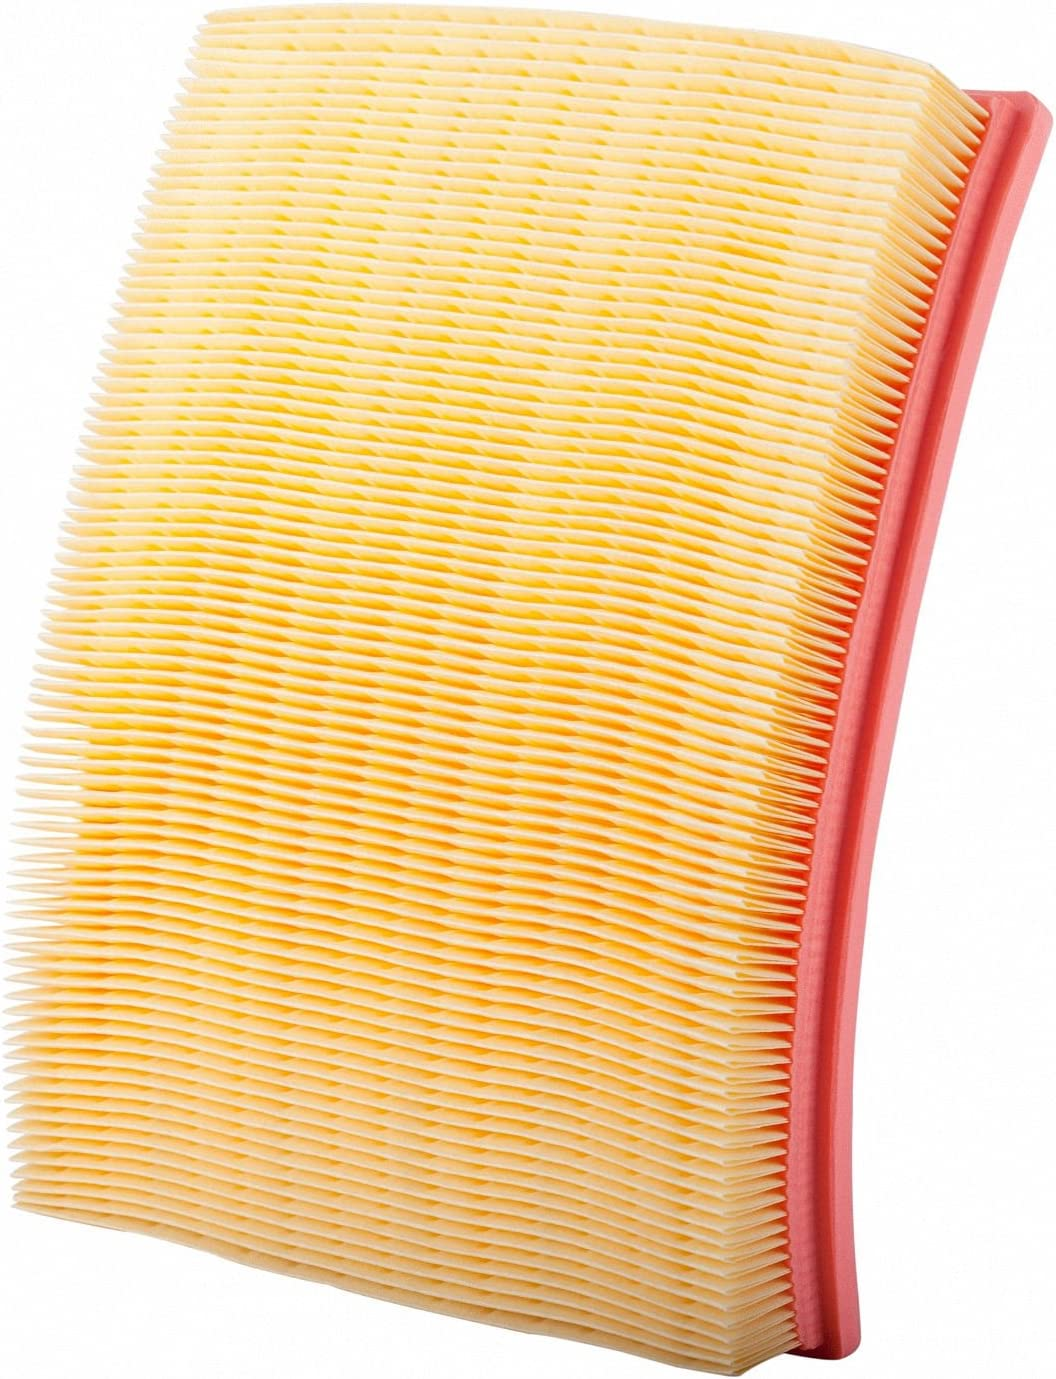 PG Air Filter PA5846 Fits 2008-09 Saturn Astra